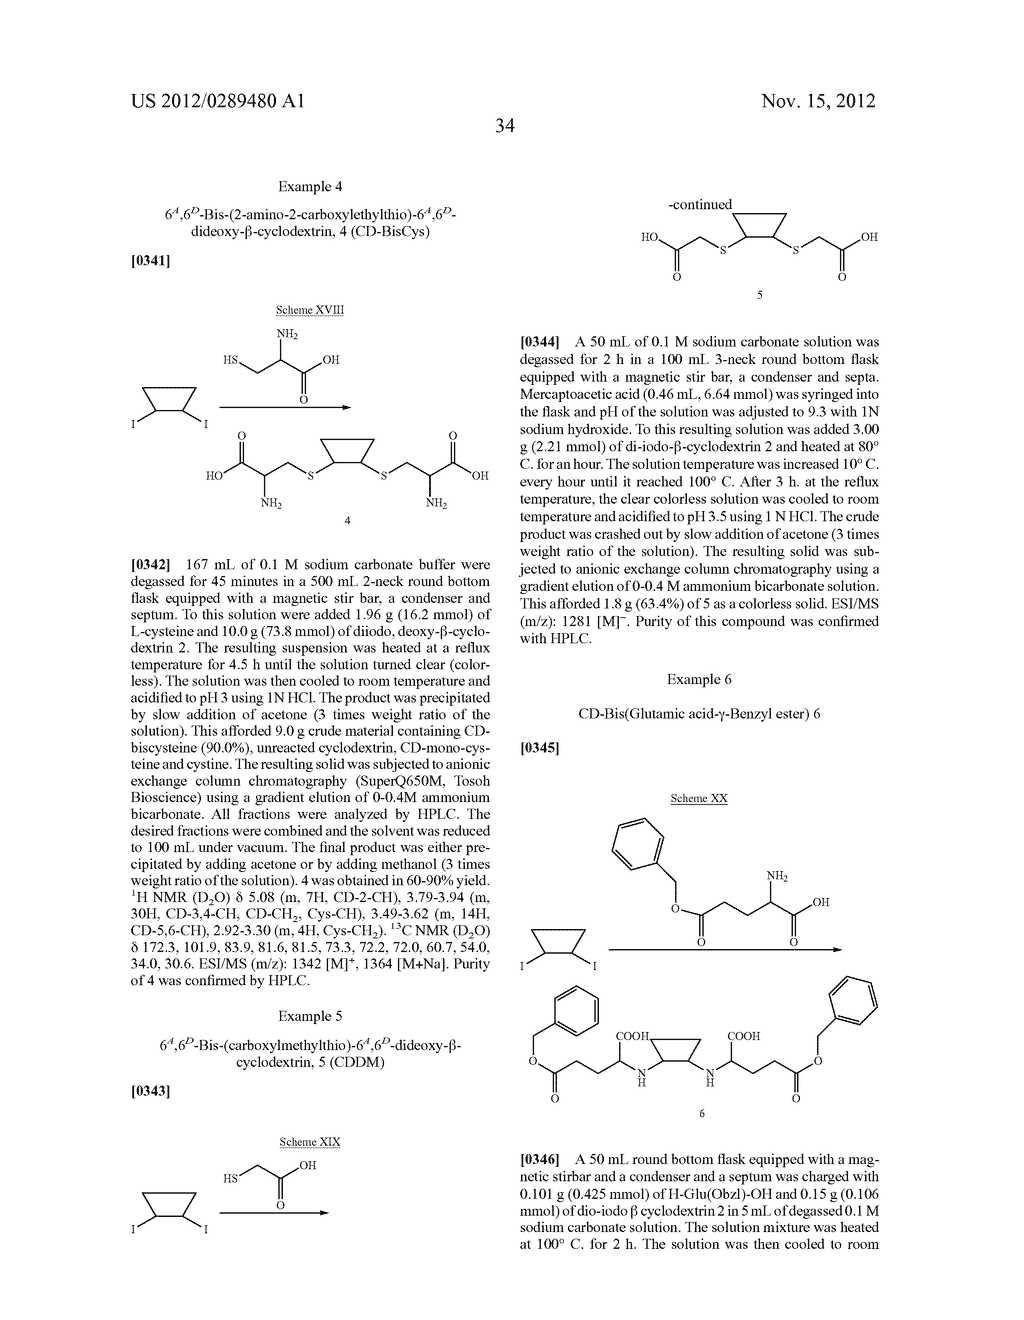 CYCLODEXTRIN-BASED POLYMERS FOR THERAPEUTICS DELIVERY - diagram, schematic, and image 46